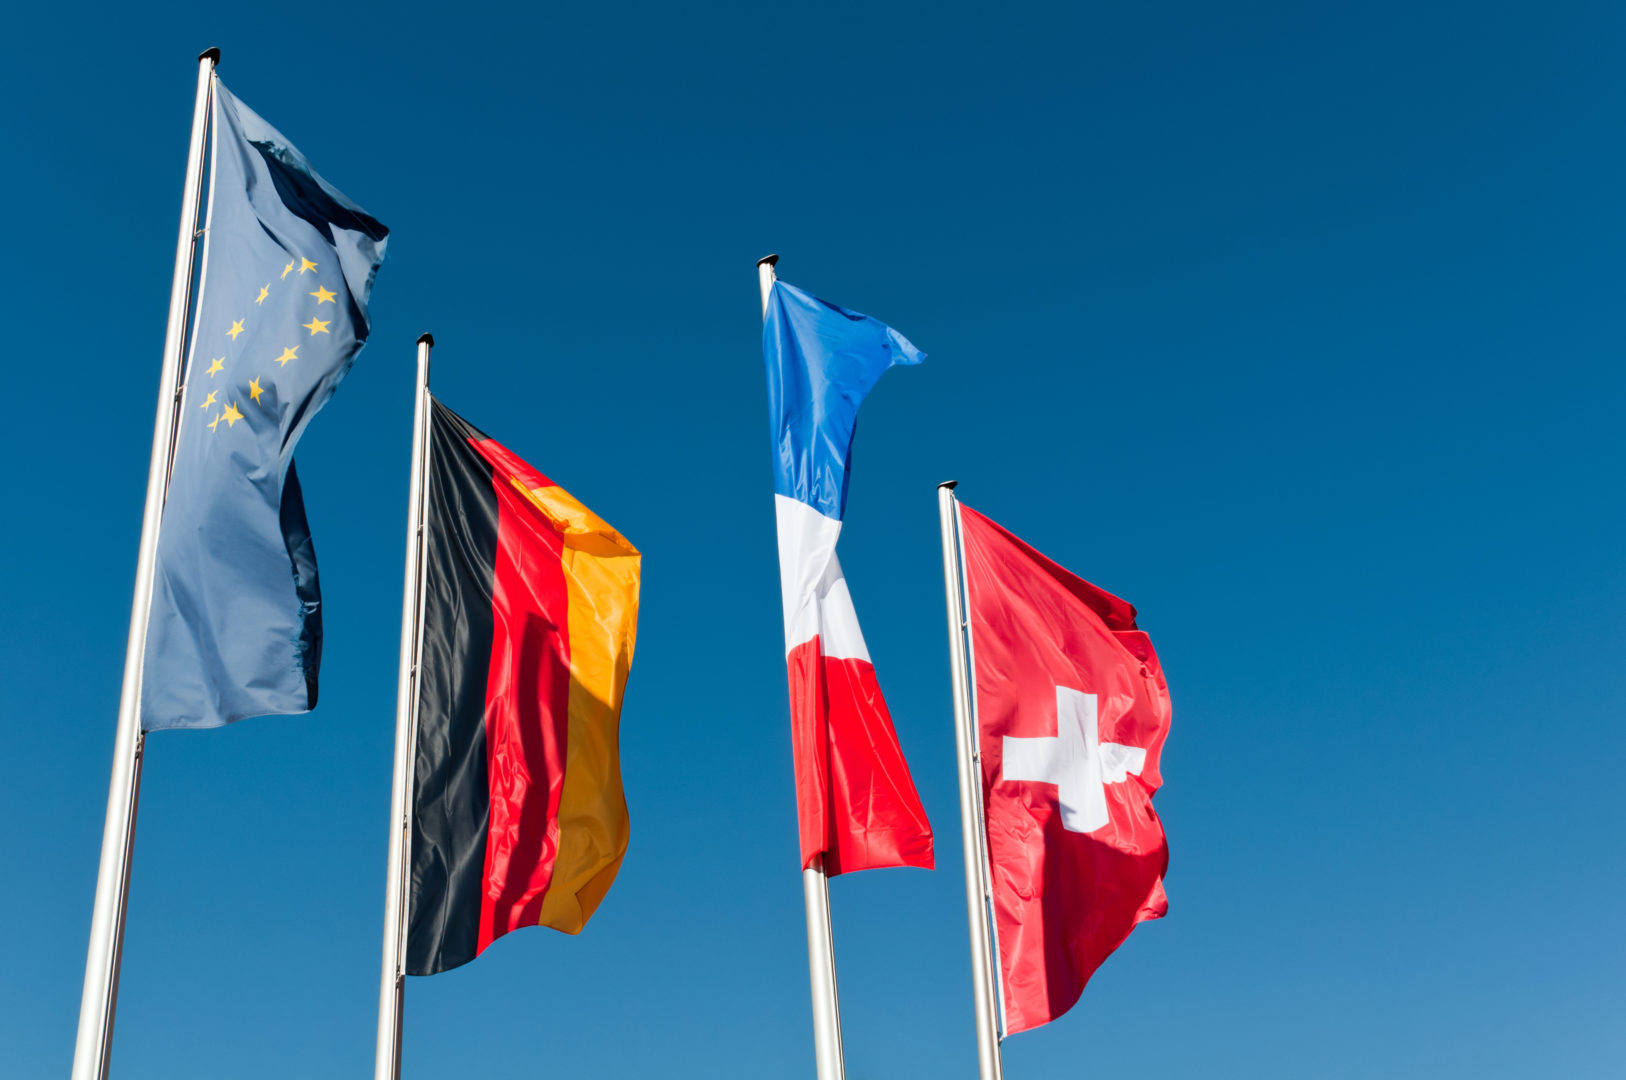 Flags Europe